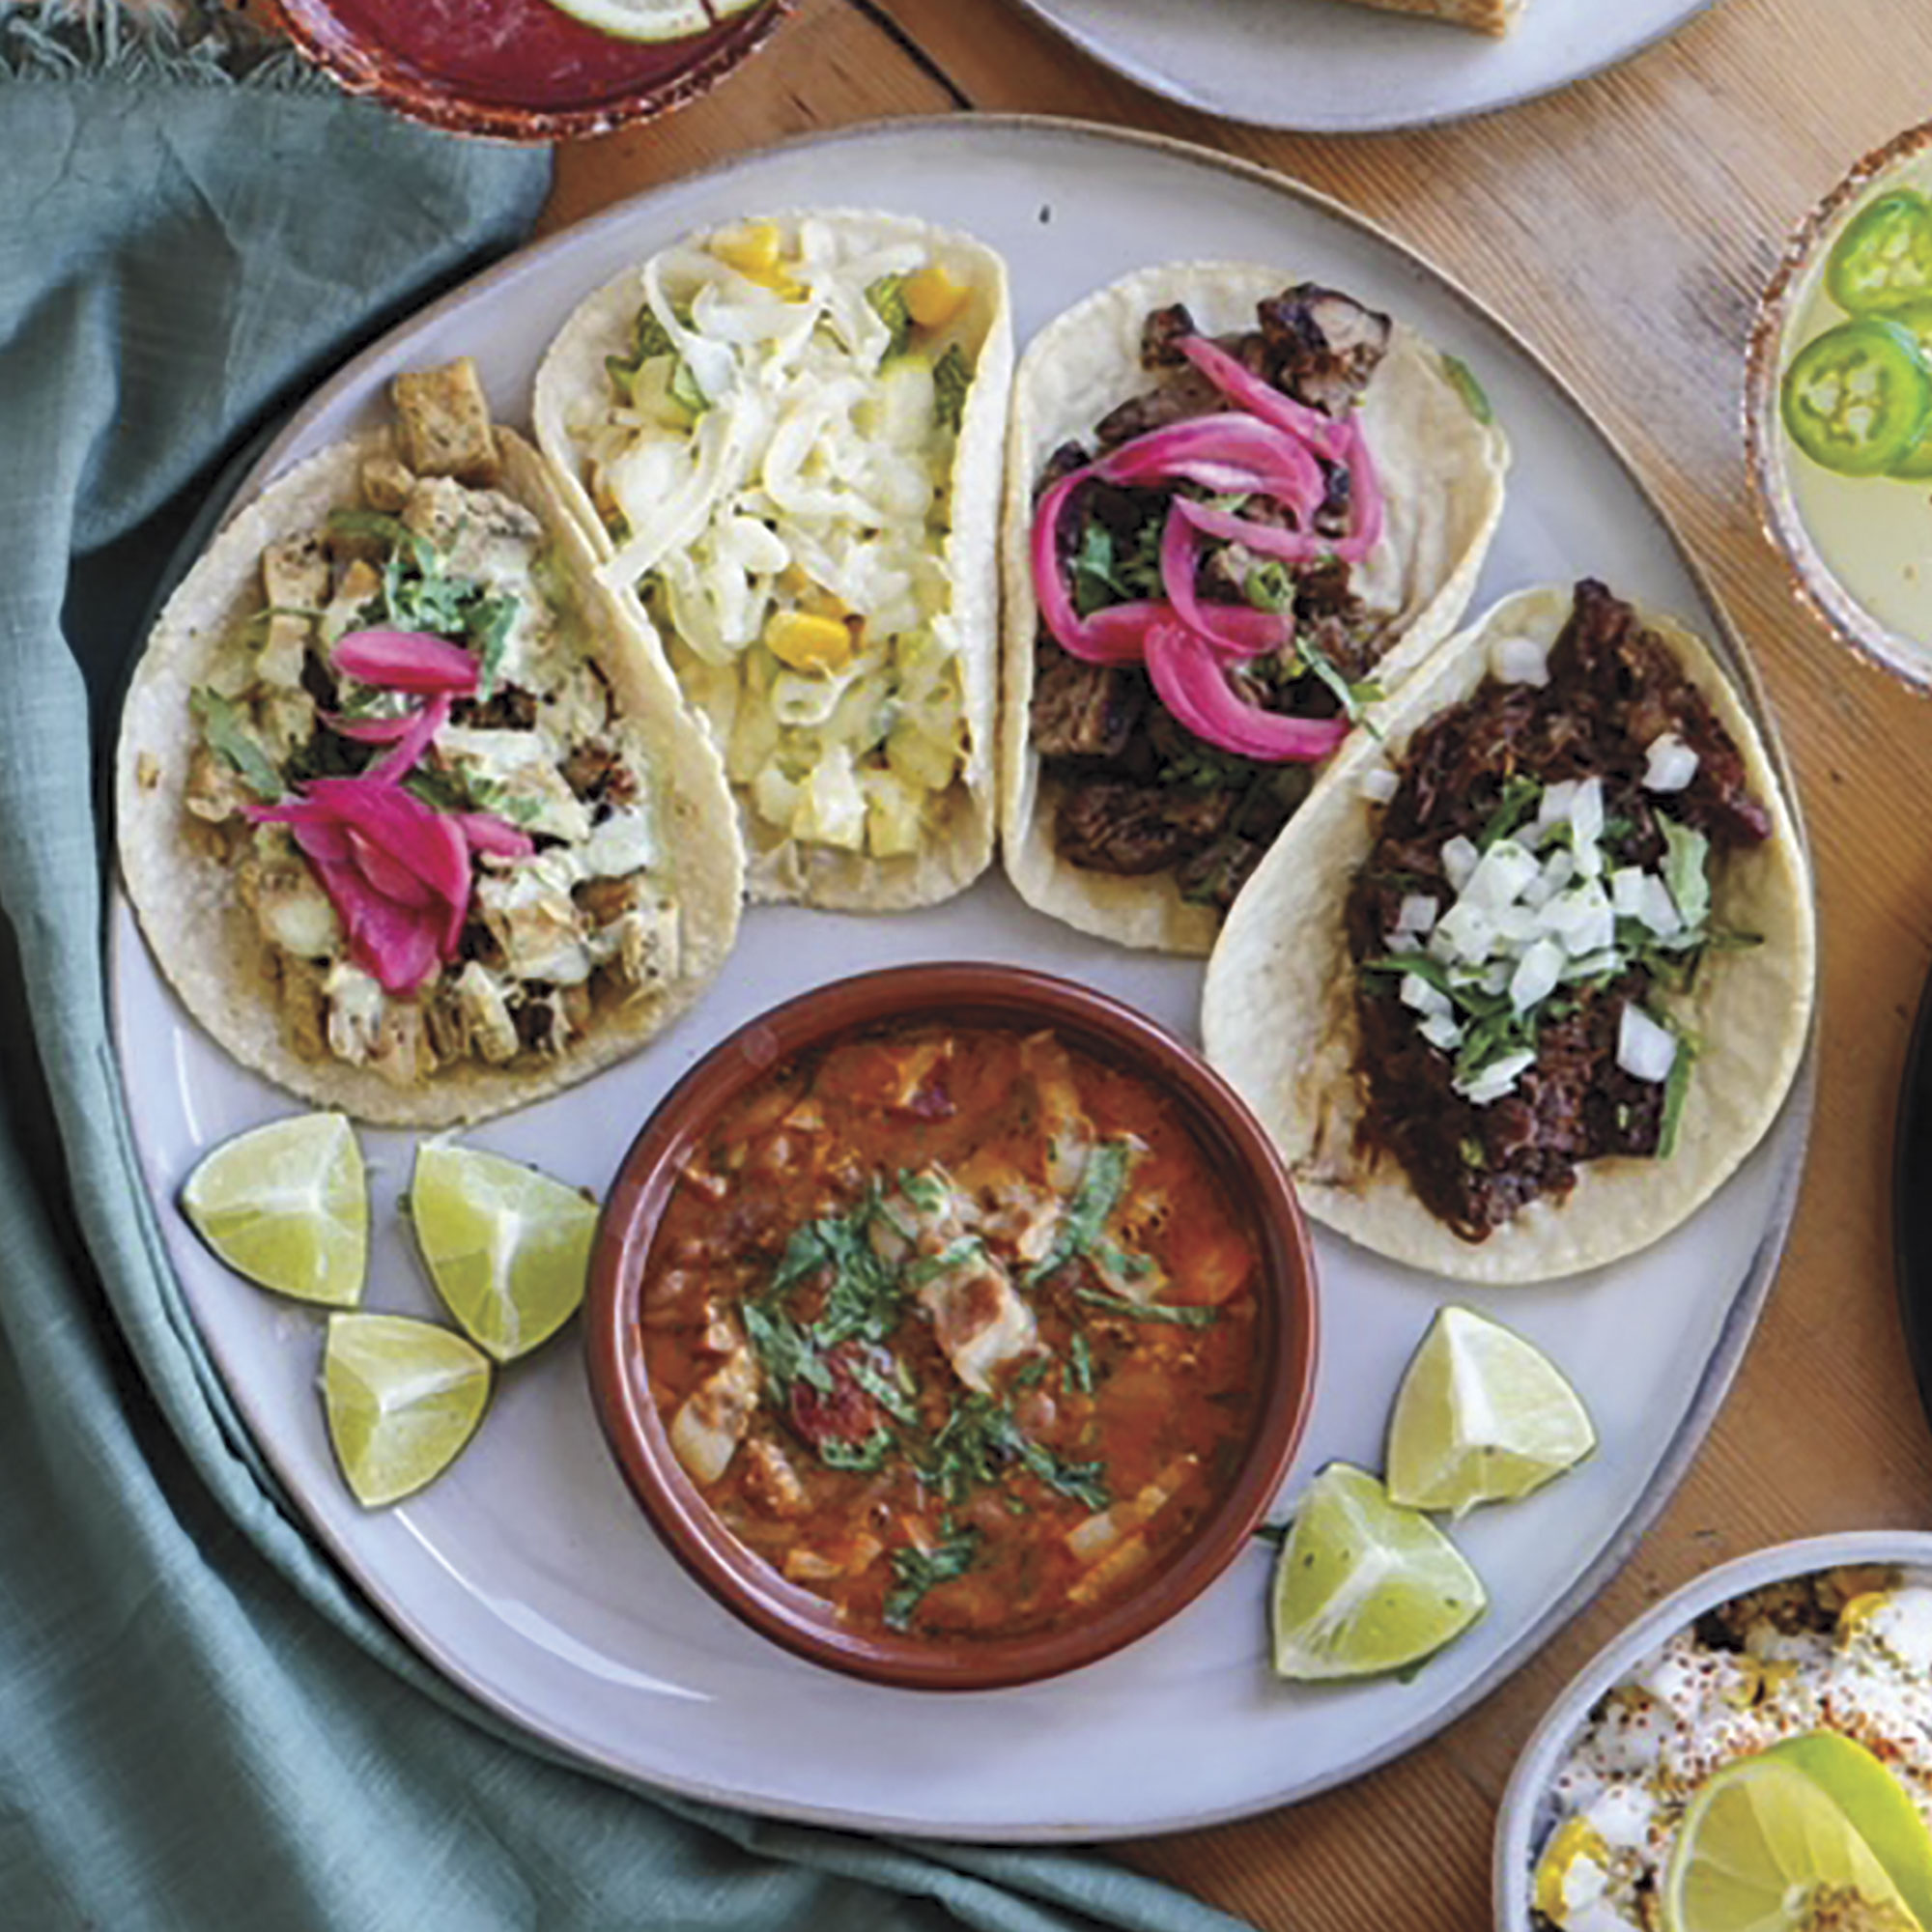 taco medley from Tacos Chiwas; Photo by Gabe Williams/Courtesy Tacos Chiwas